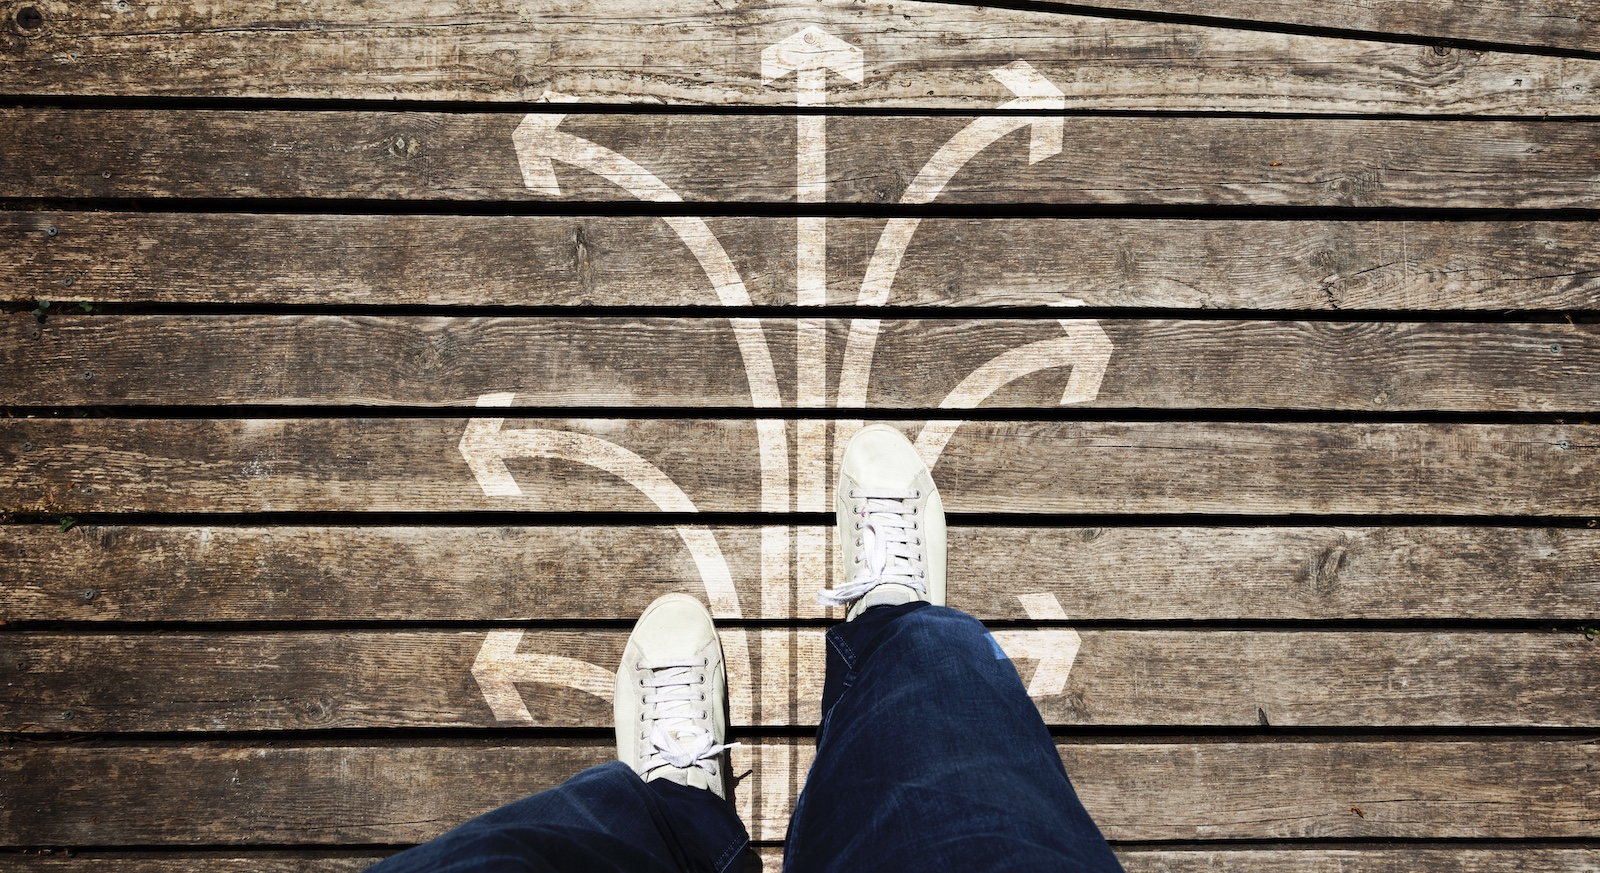 Man looking down at his shoes and arrows drawn on floor pointing in different directions